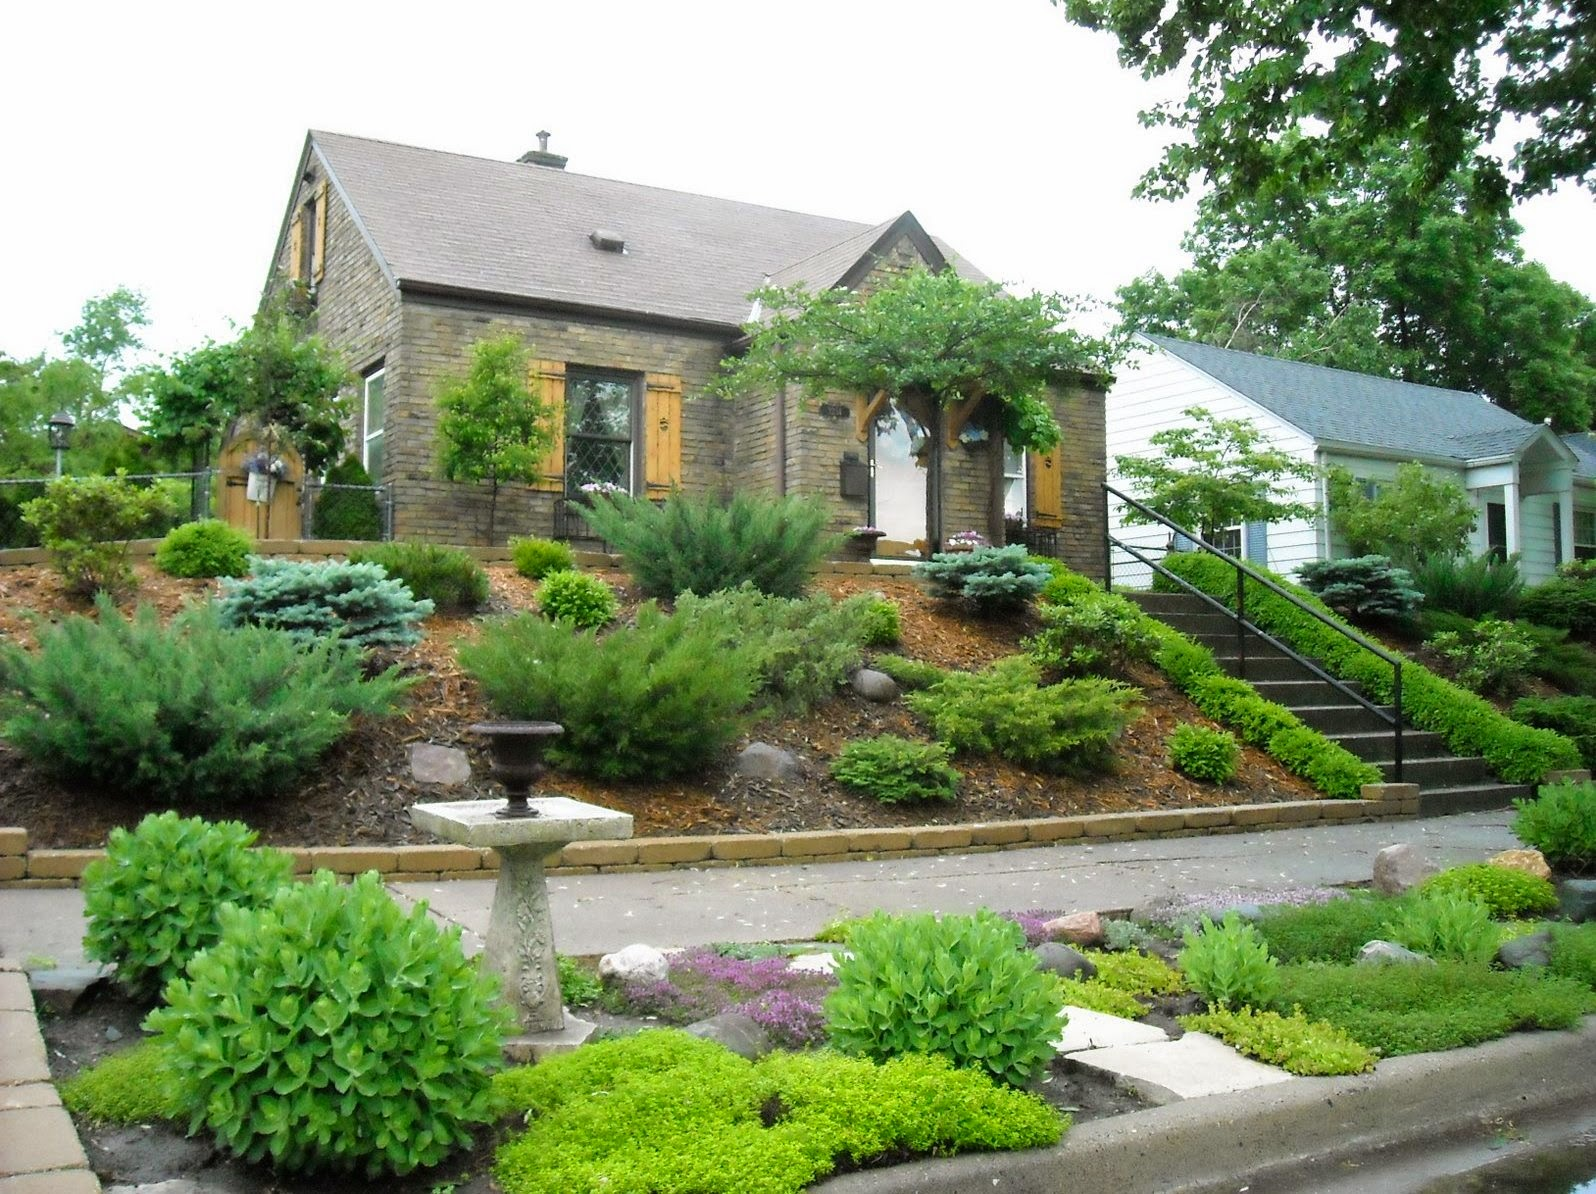 Landscaping Ideas For Front Of House Original Home Designs